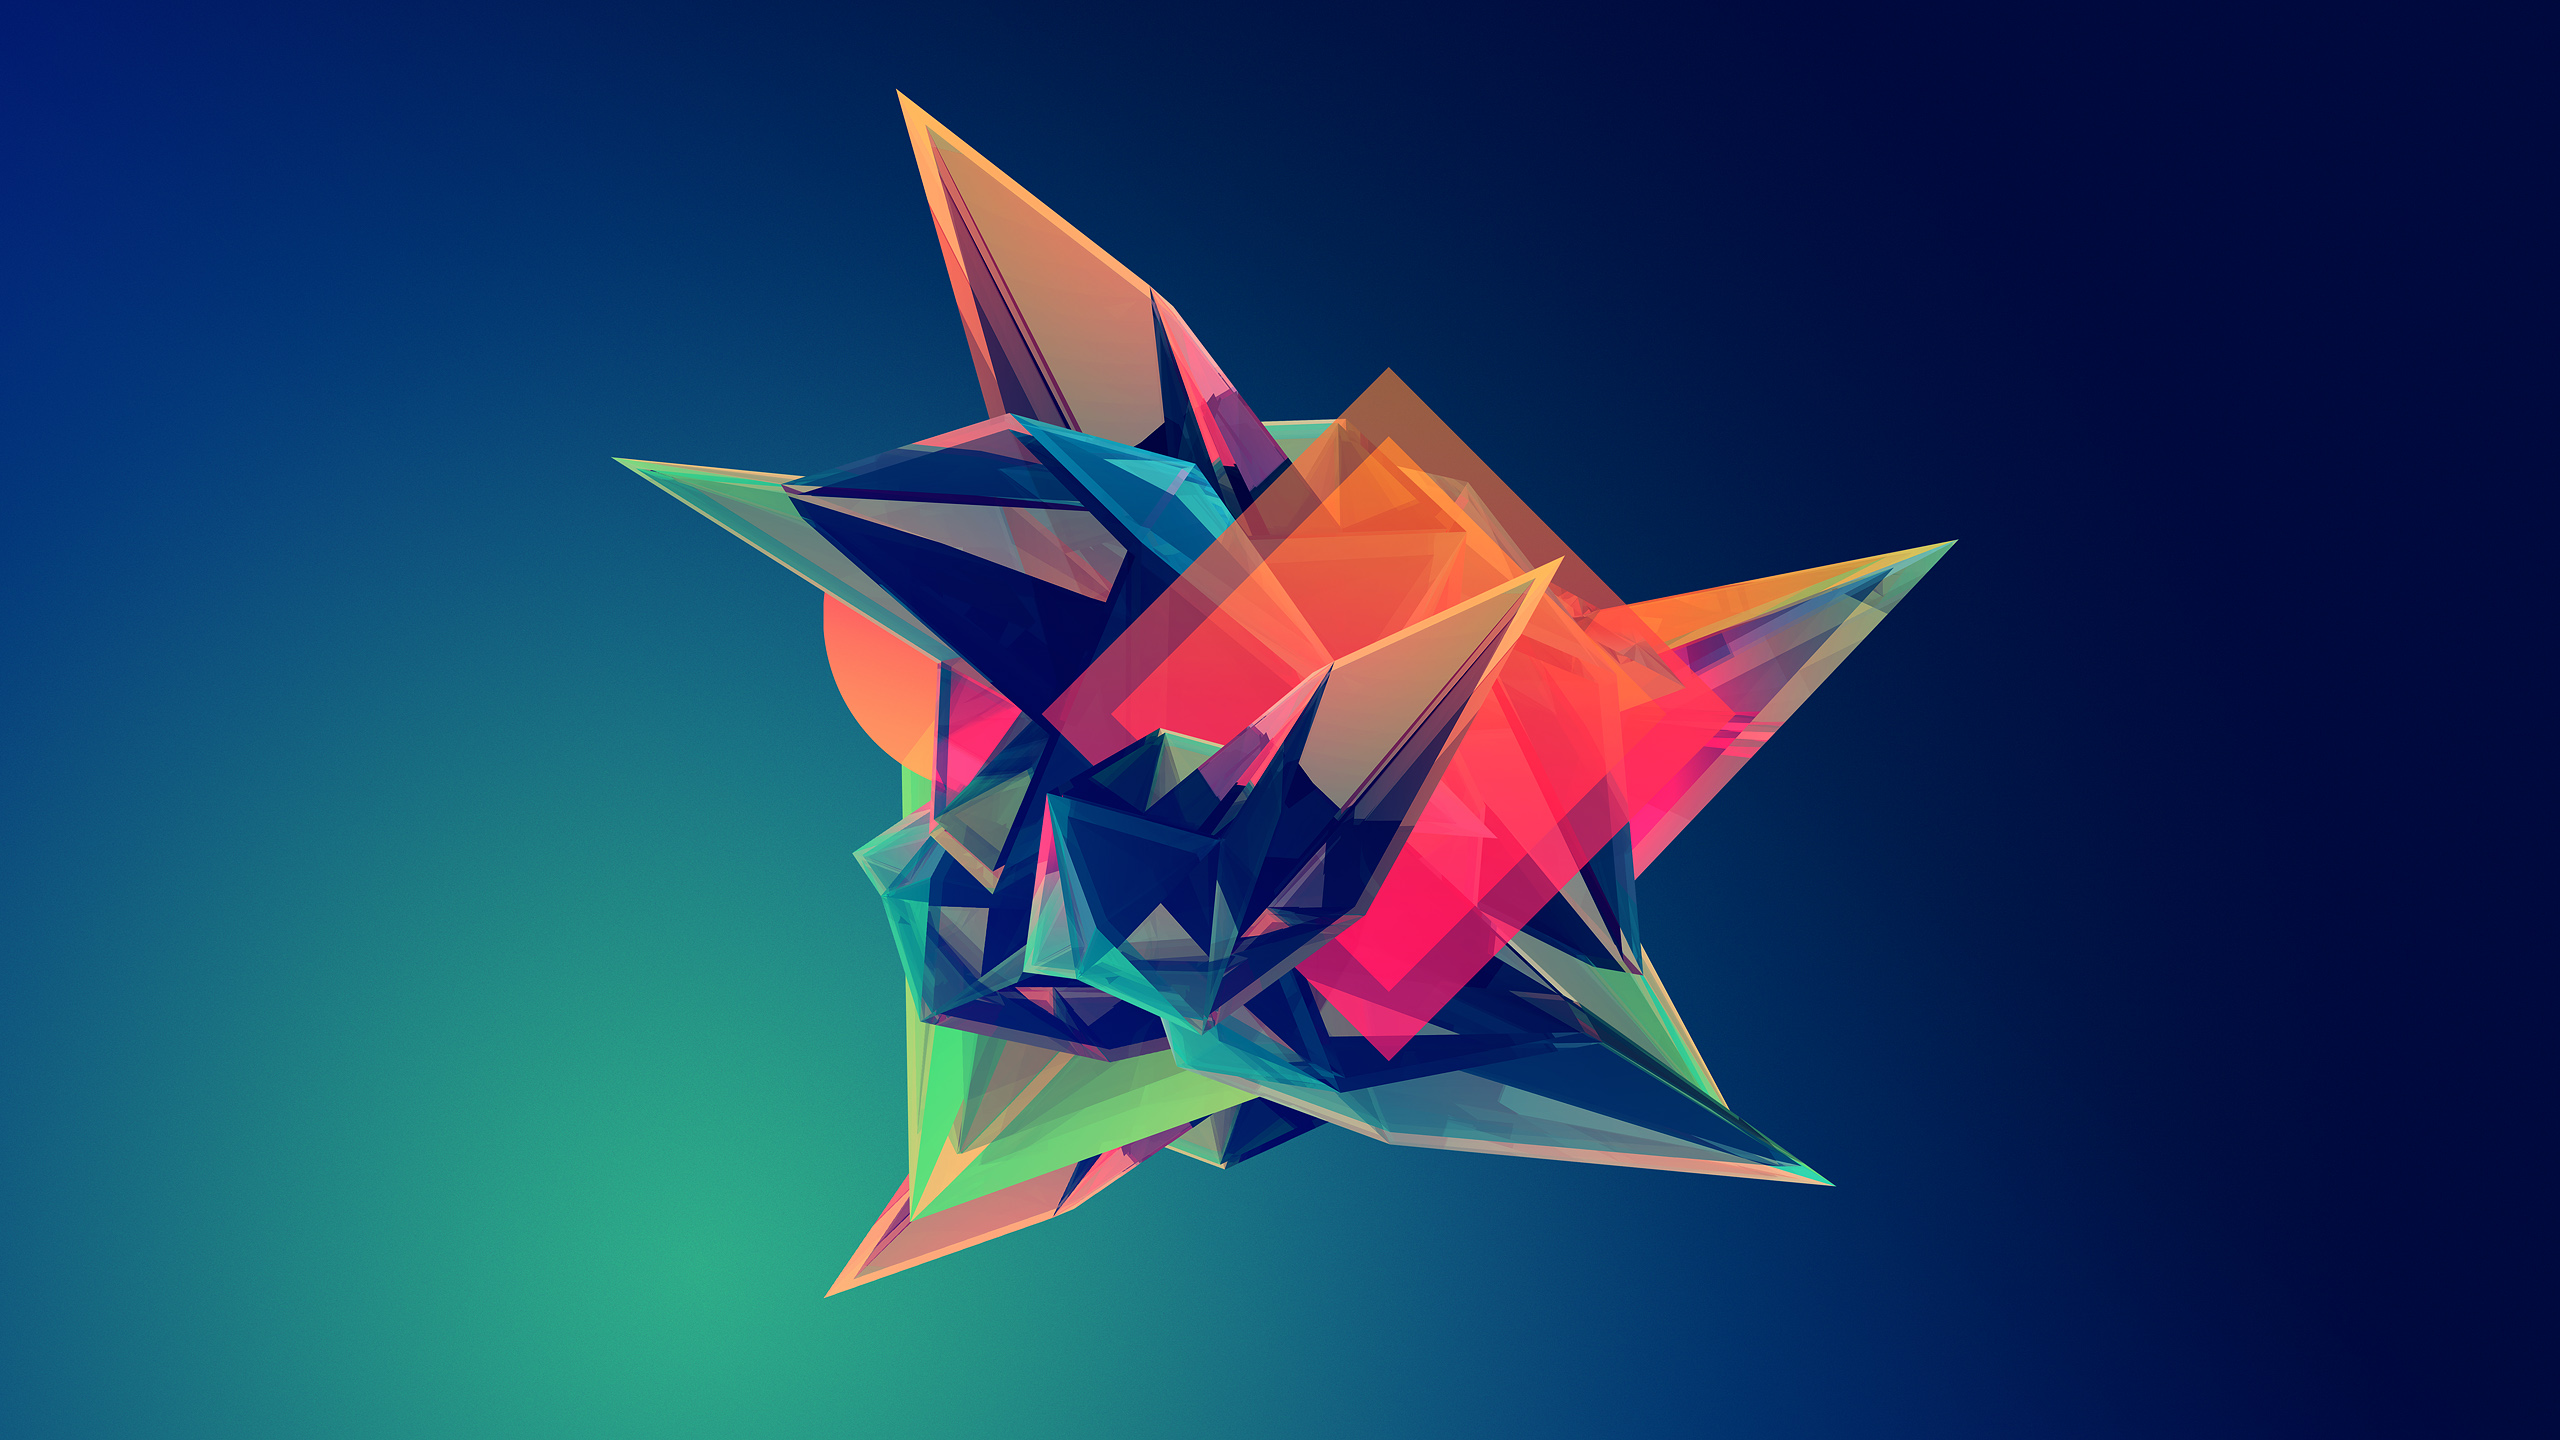 5 Days of Awesome Wallpapers  Geometric Wallpapers   TechSpot Facets Artwork Geometry Abstract